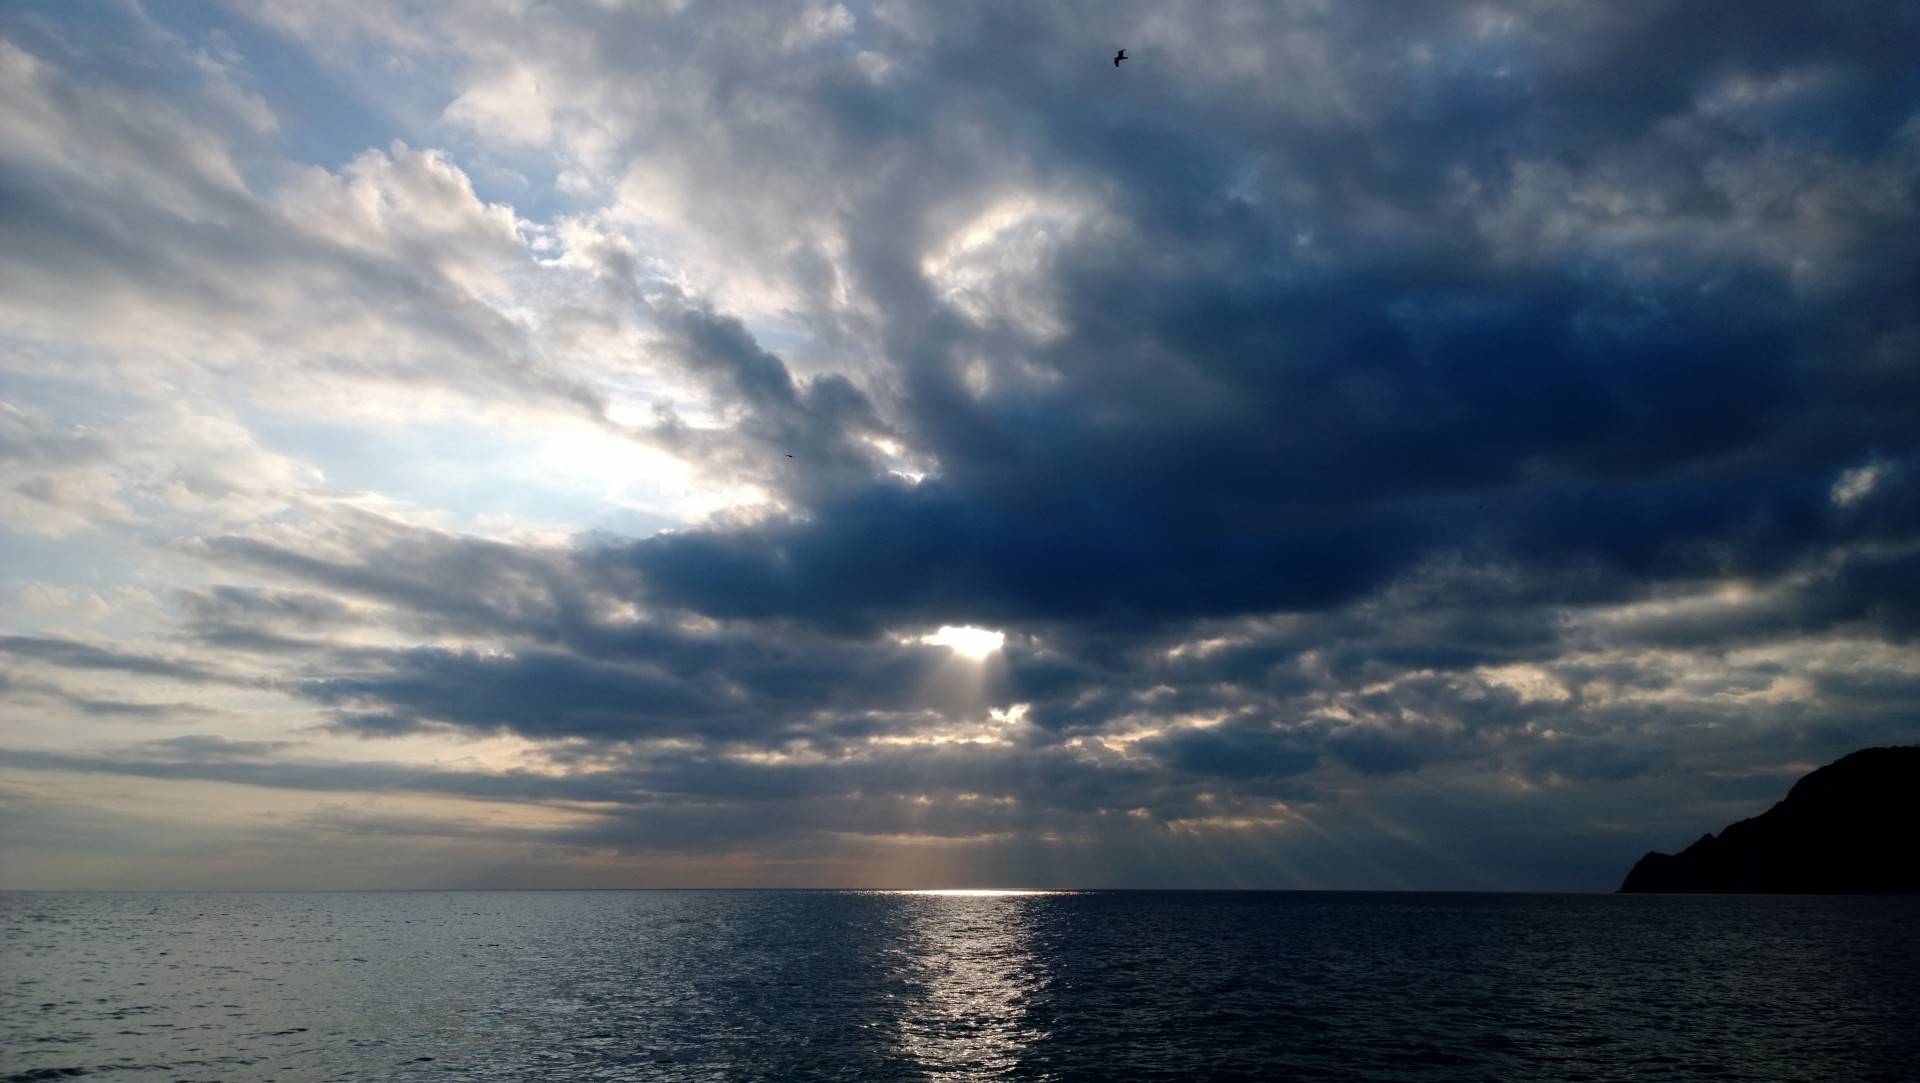 god like scenery, clouds covering the sun and a big lake